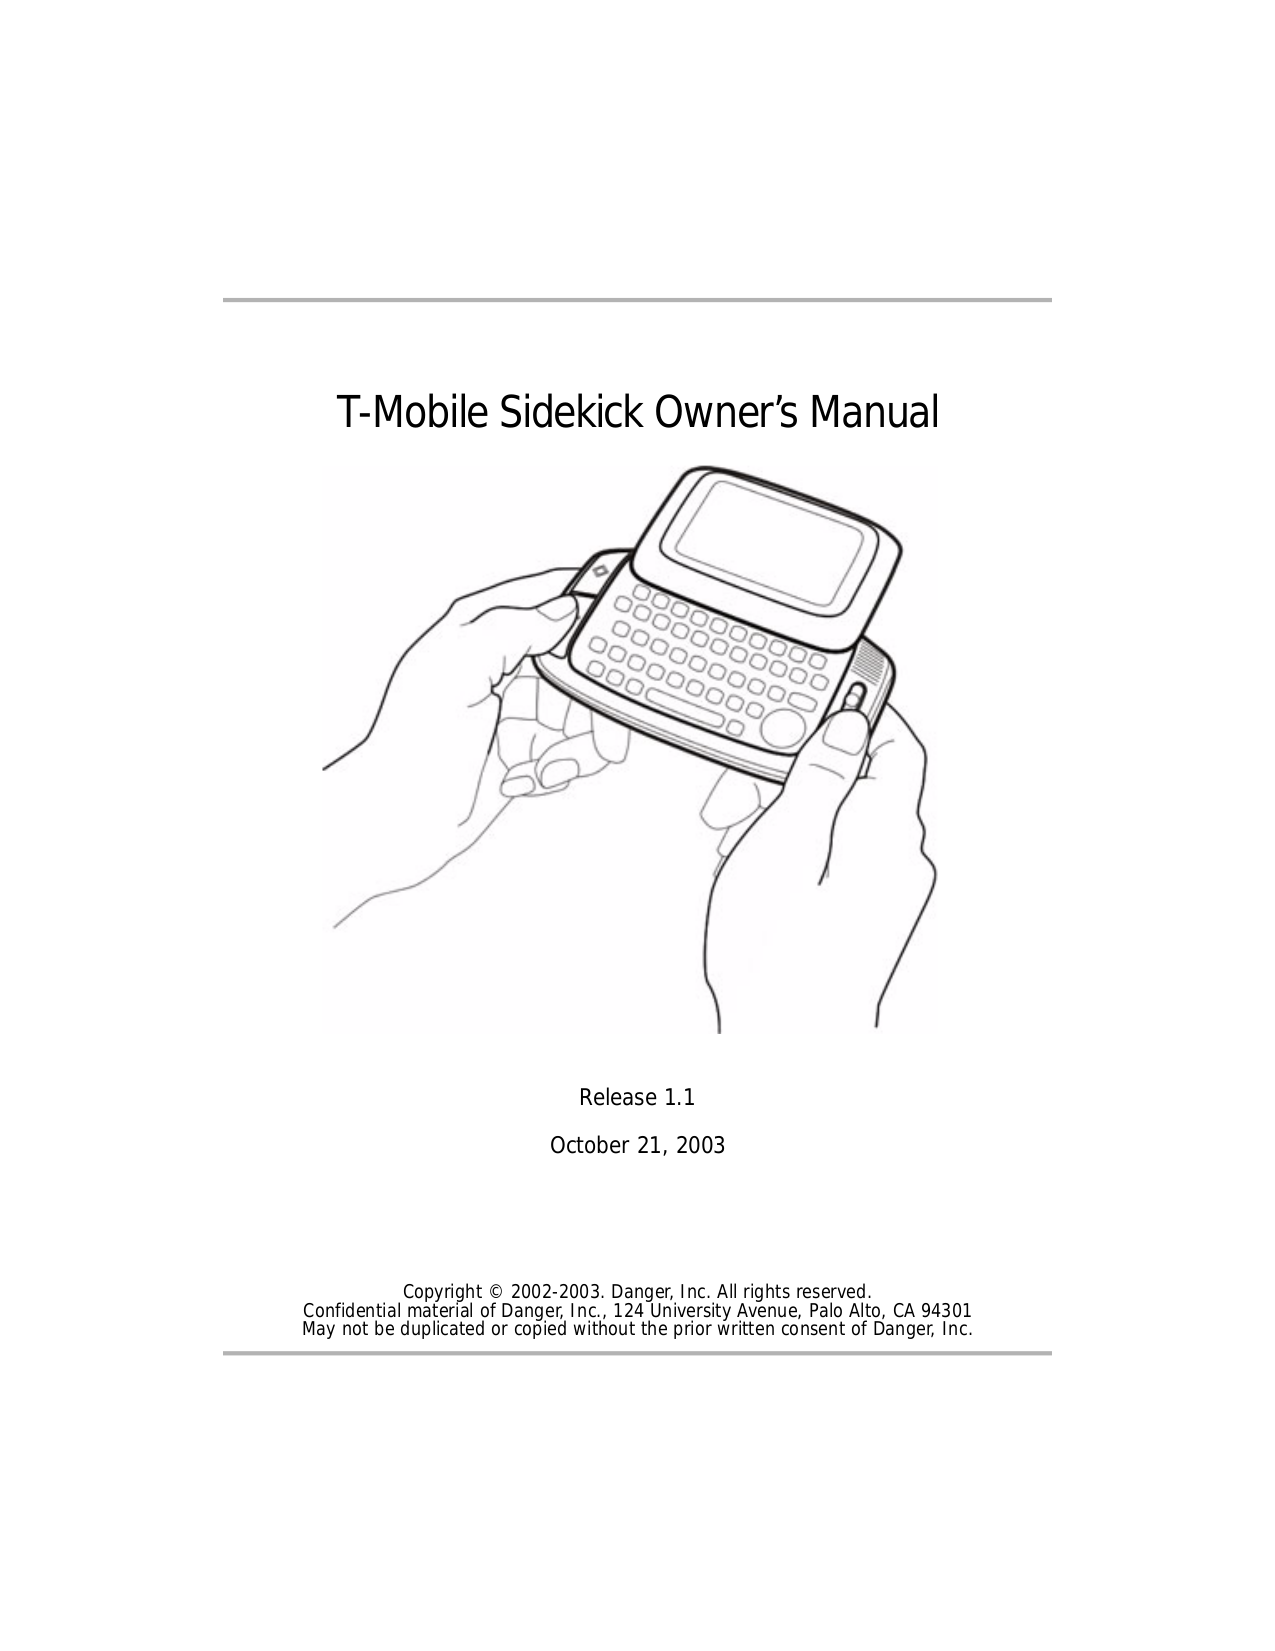 Download free pdf for T-Mobile Sidekick 2 Cell Phone manual